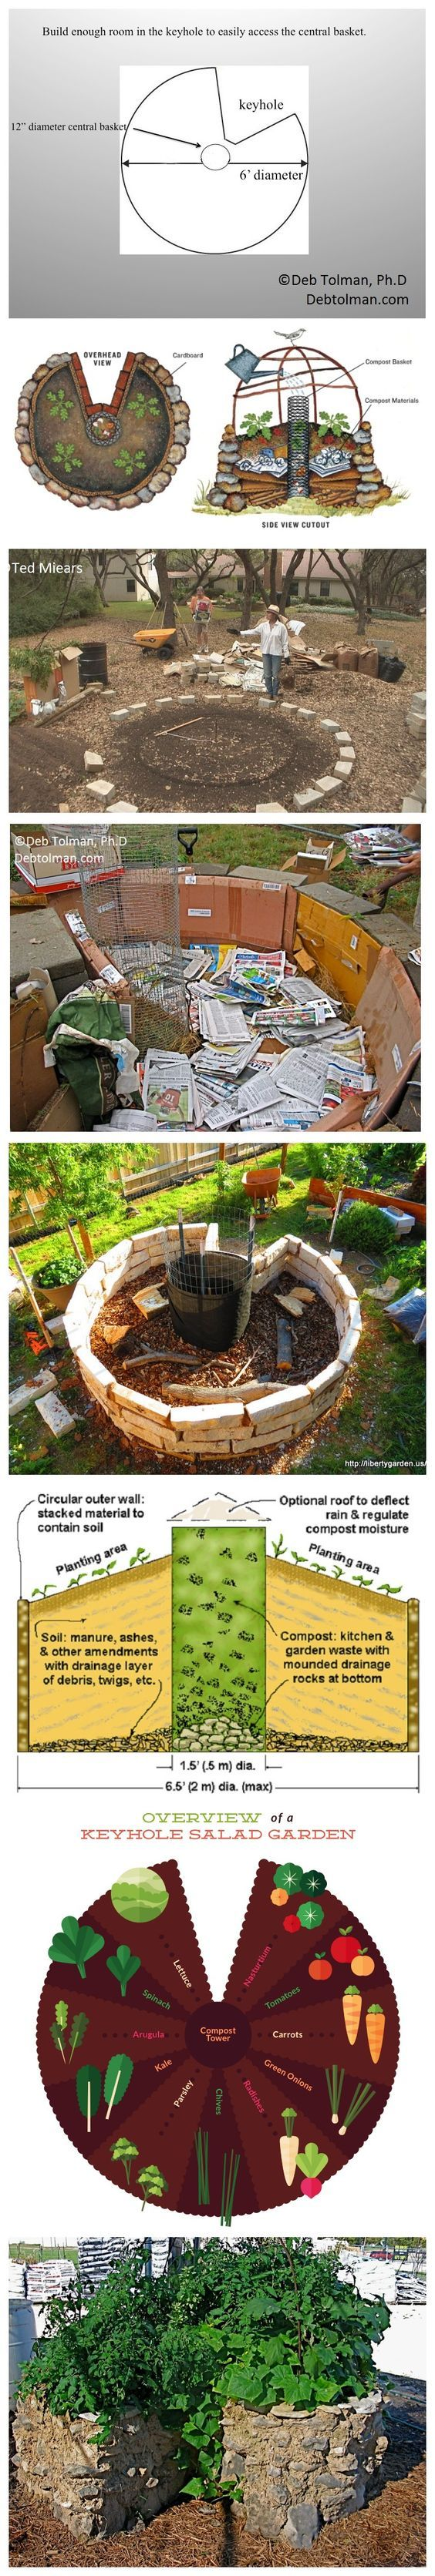 Keyhole garden. Designed for arid environments with poor soil, it's a raised bed…